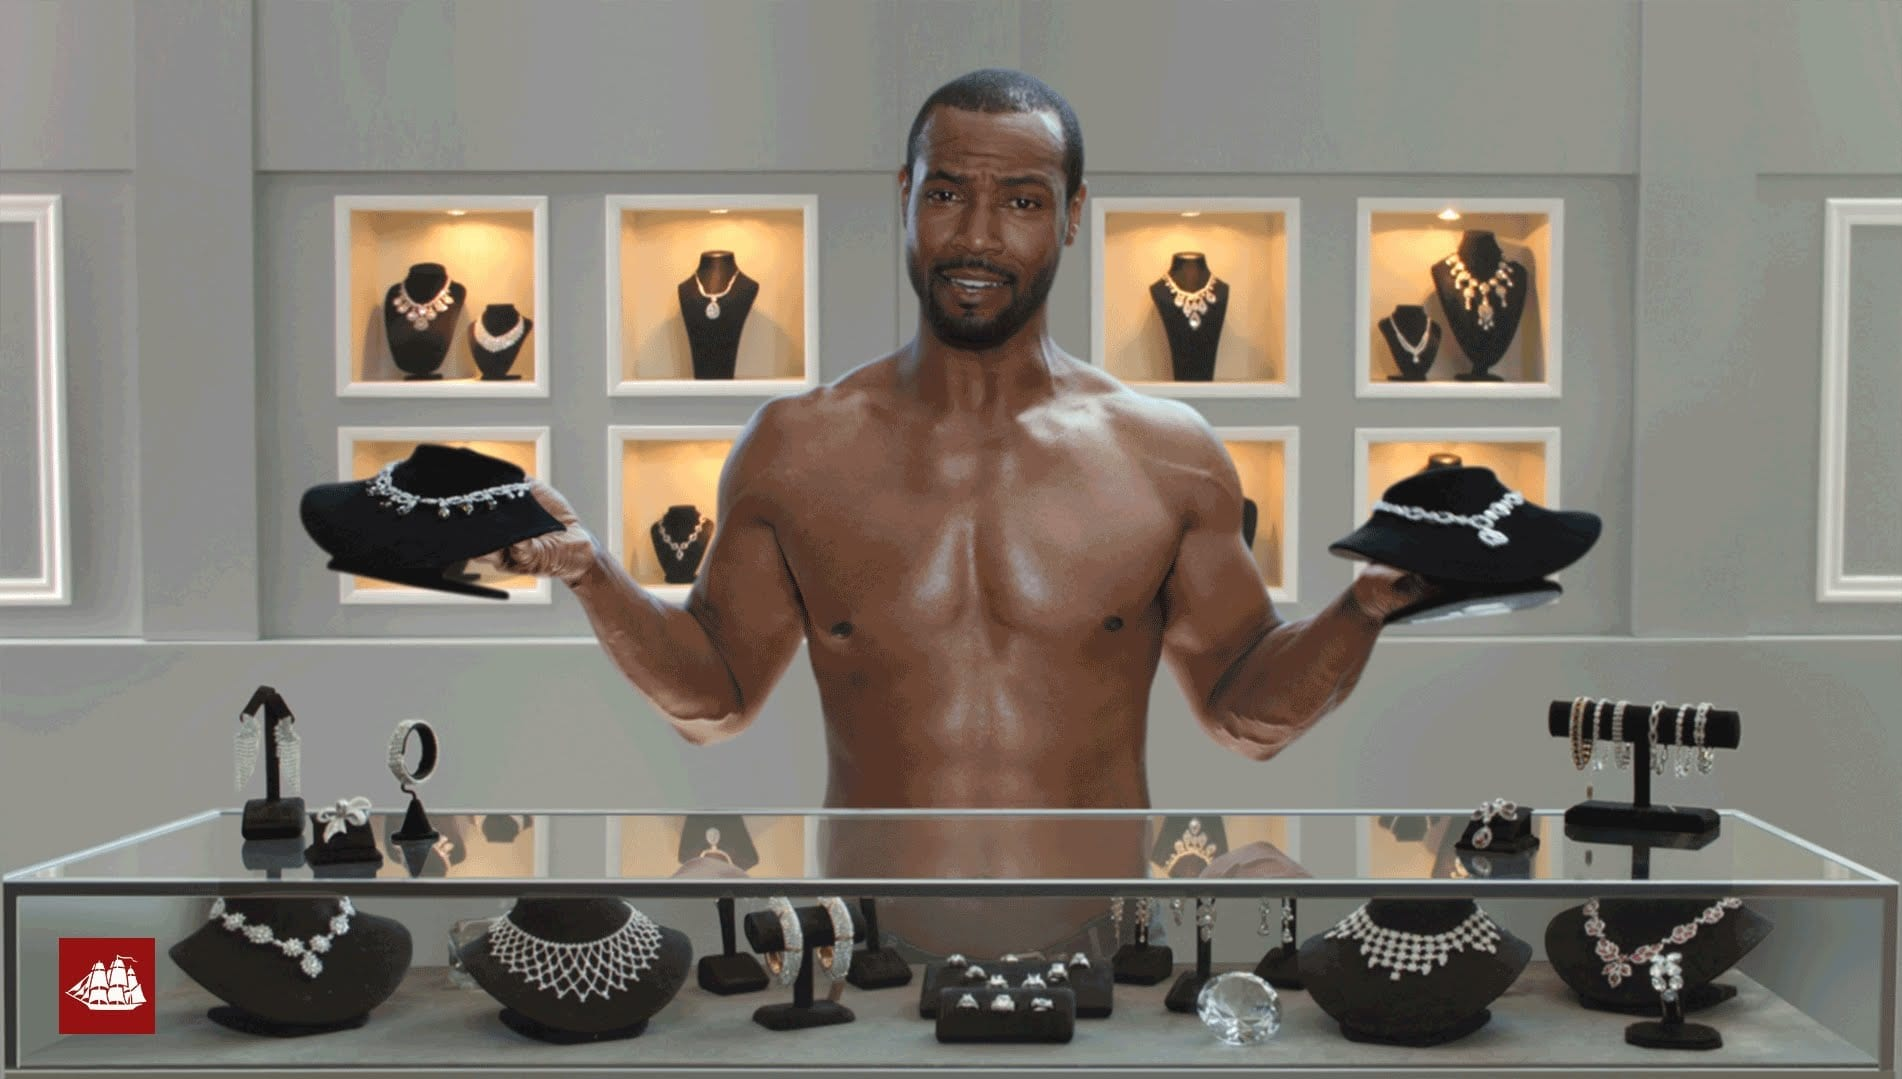 a personal analysis of the old spice commercial The old spice commercials imply that by using their product, a man will be or become more similar to the old spice man, or in other words, the ultimate man the old spice advertisements capture men by reaching out to the needs of women, giving the ideal image of what a man should be and how he should smell, and by creating a sexual theme that.